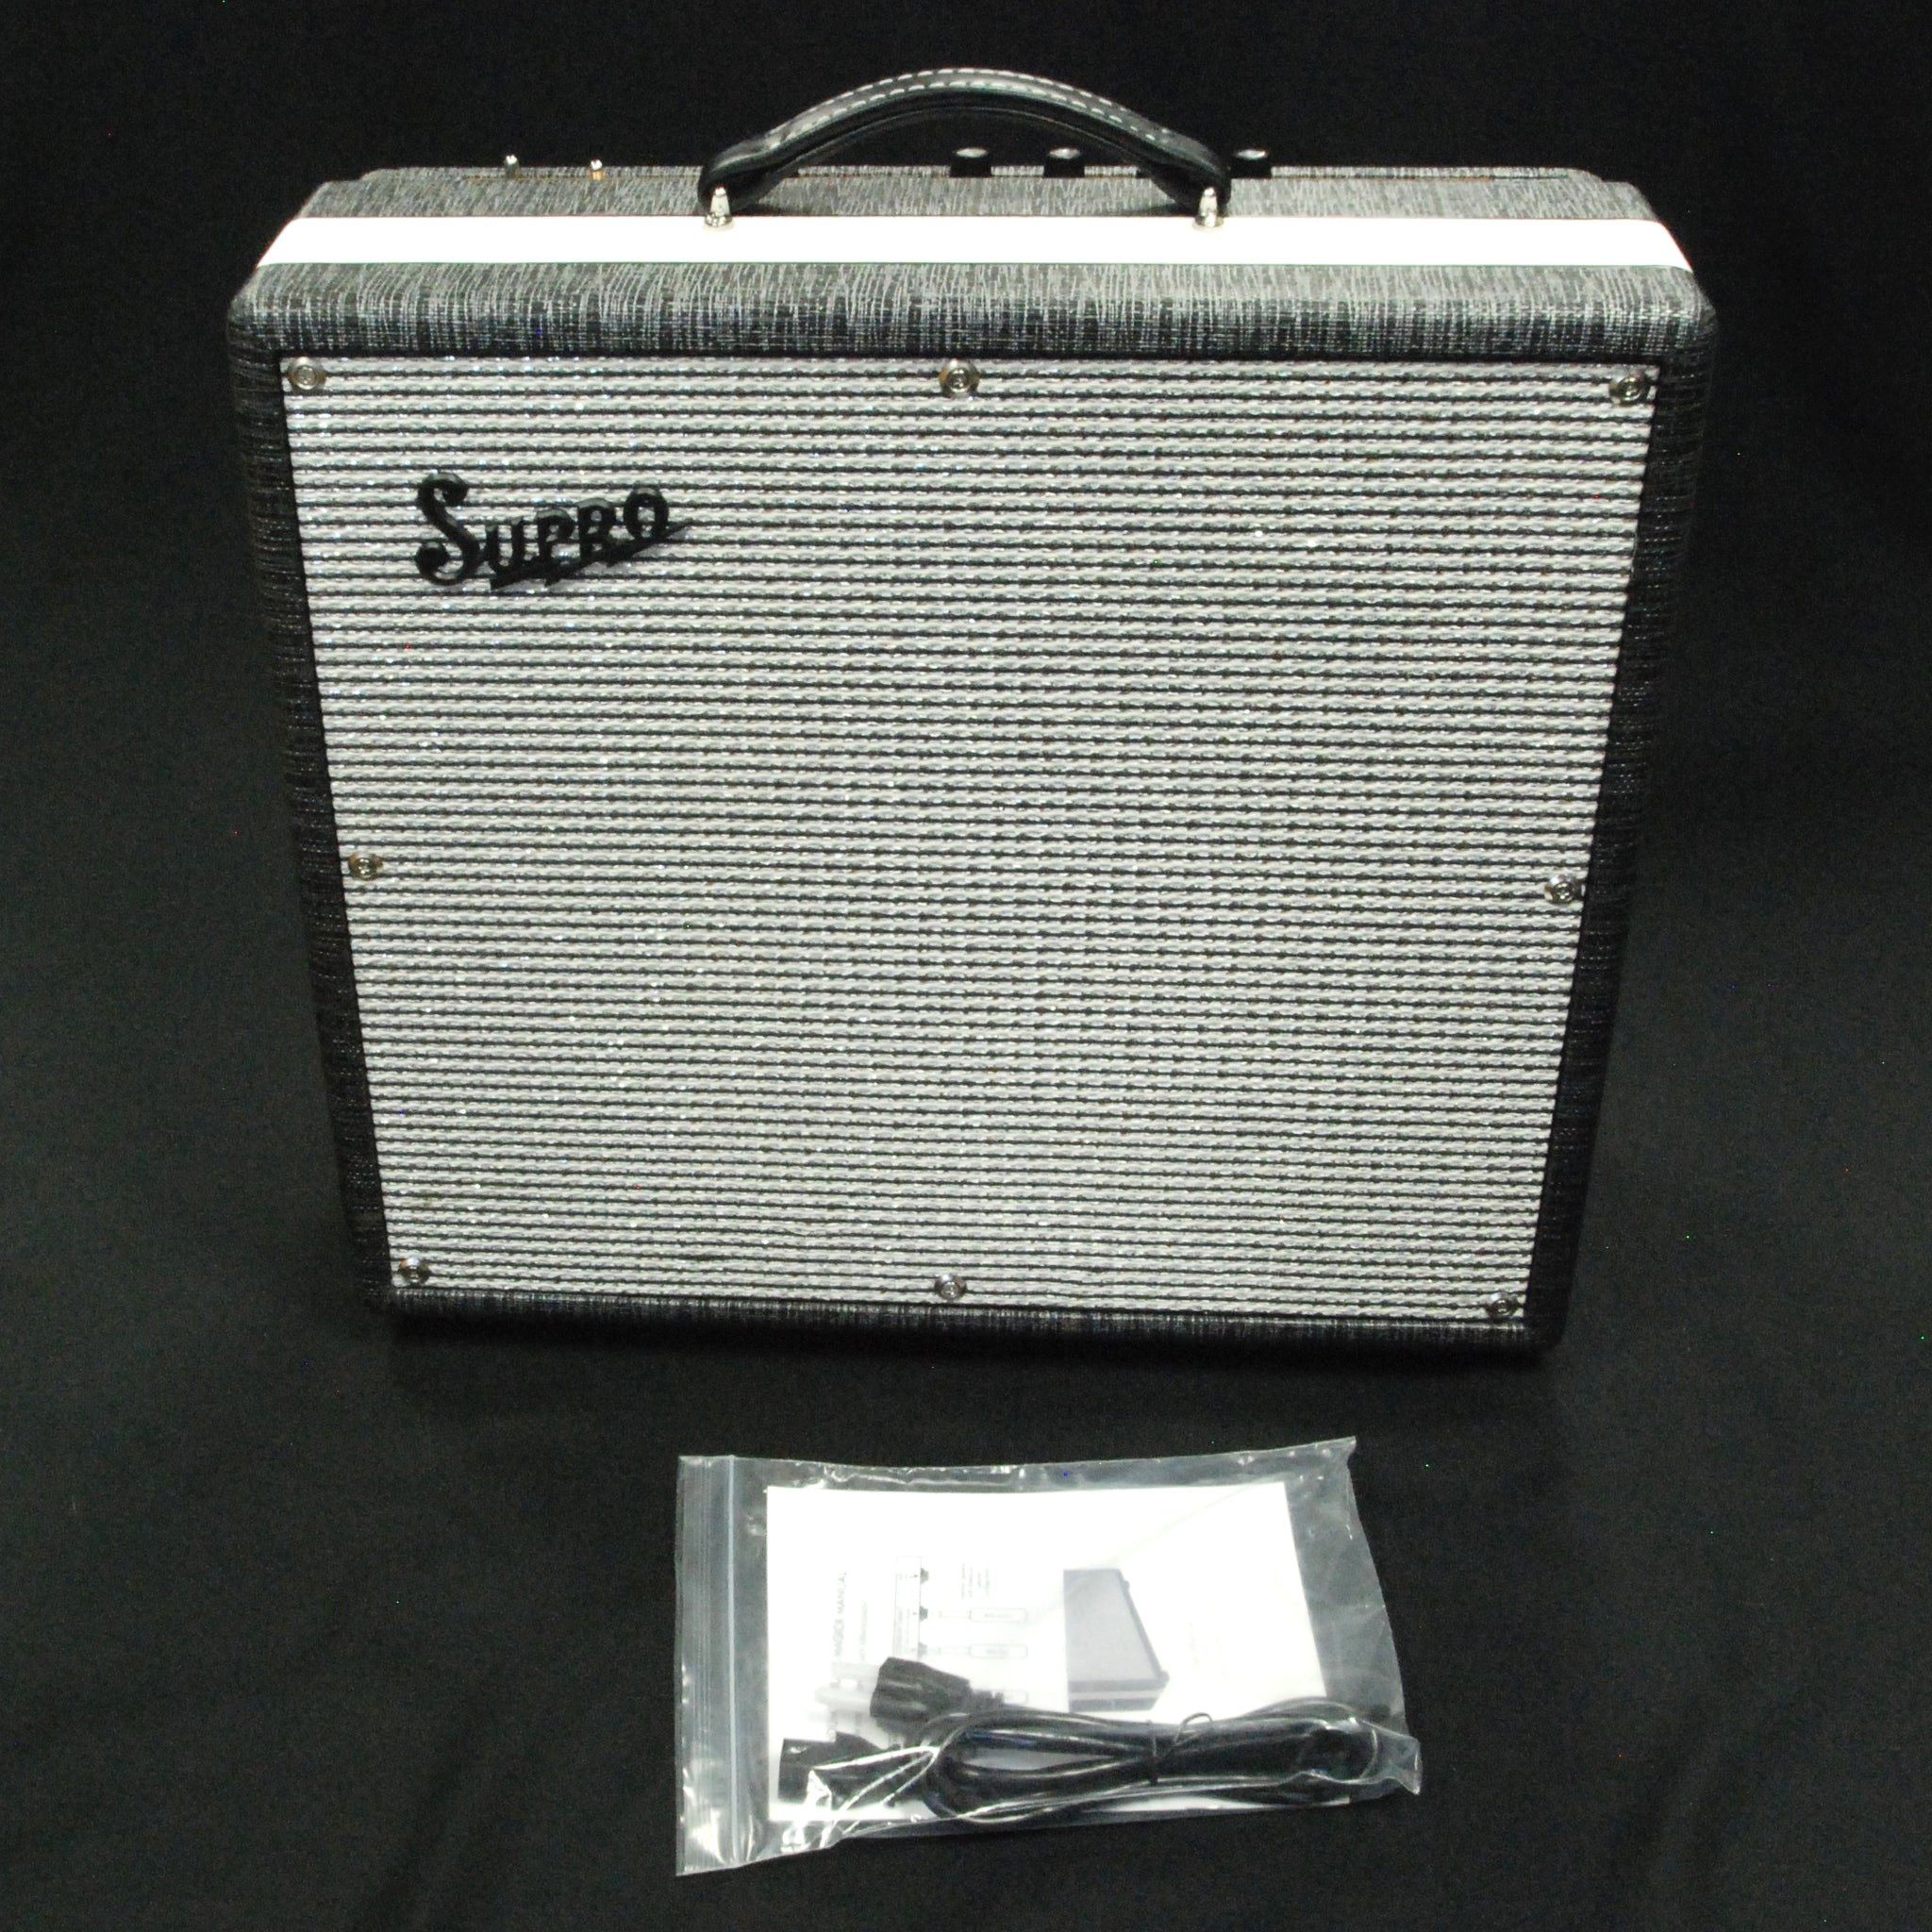 Shop online for Supro 1695T Black Magick 1X12 Guitar Combo Amplifier today.  Now available for purchase from Midlothian Music of Orland Park, Illinois, USA